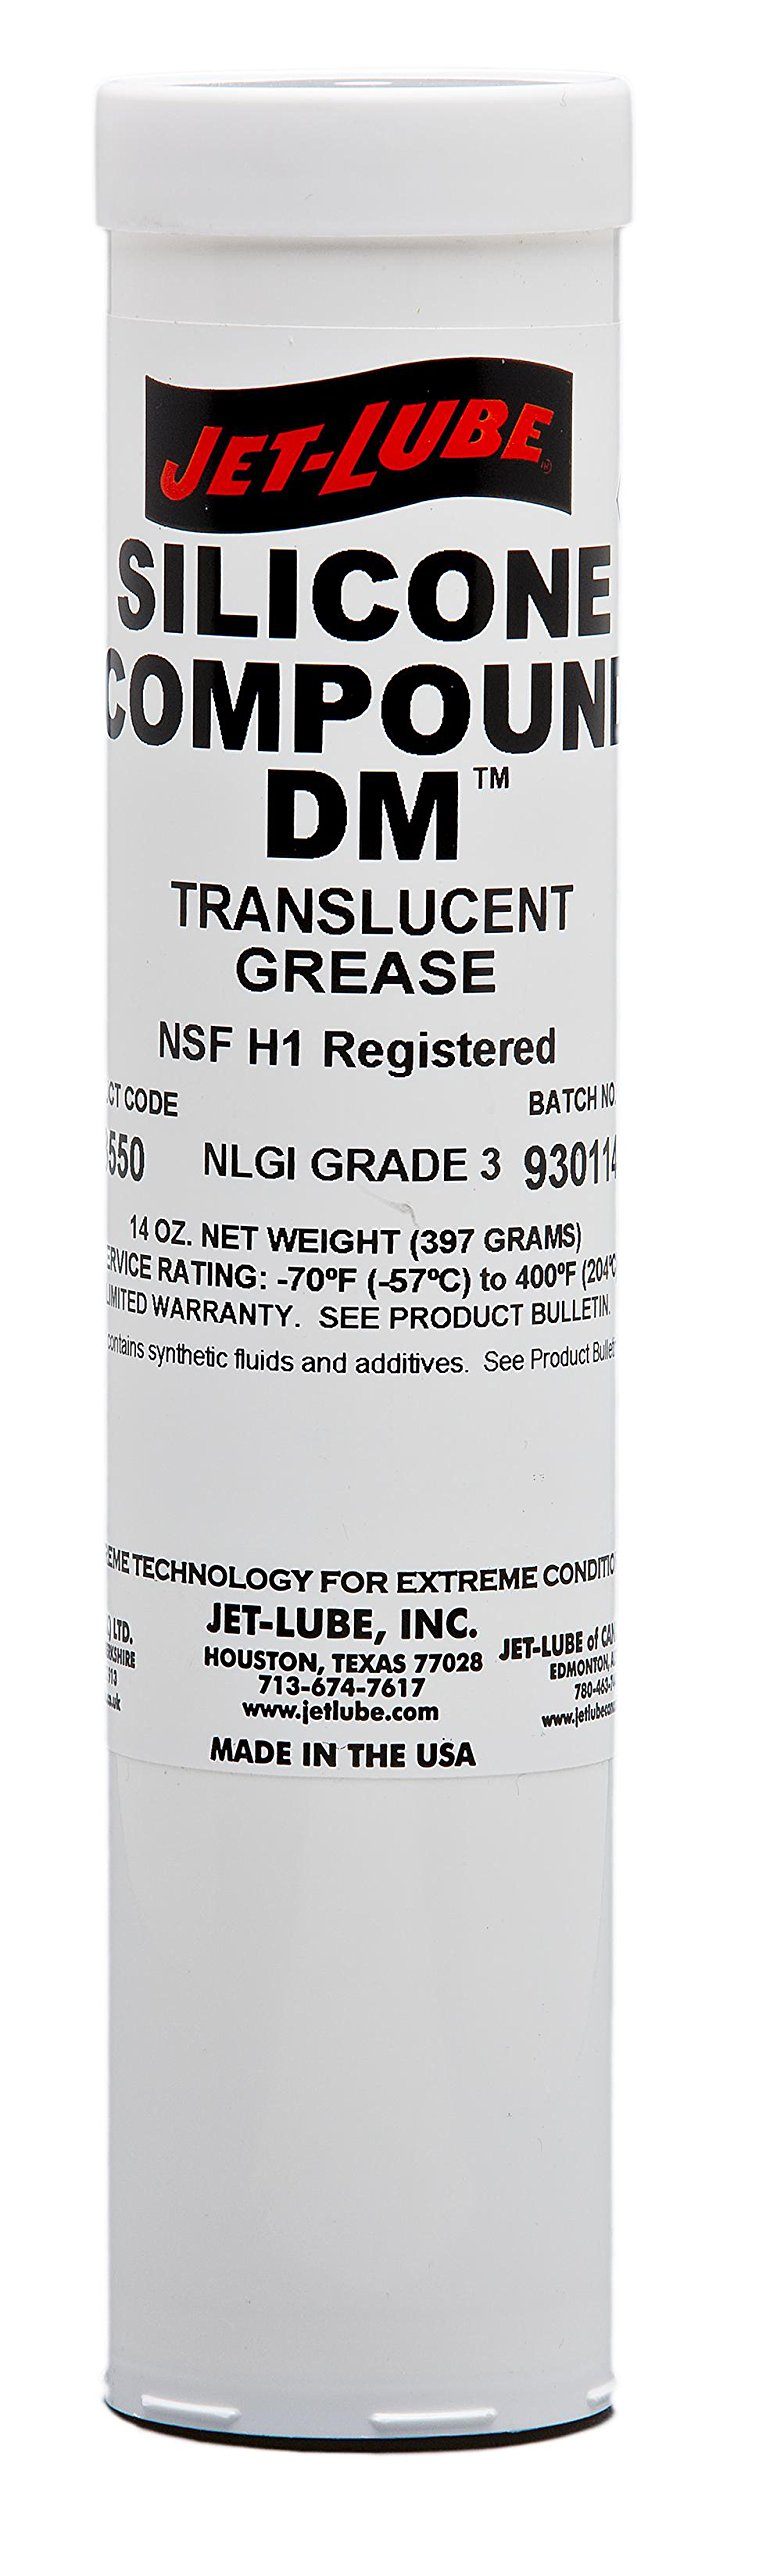 Jet-Lube 73550 Silicone DM Dielectric Grease, -70 to 400 degrees F, 3 NLGI Number, 14 oz Cartridge, Translucent